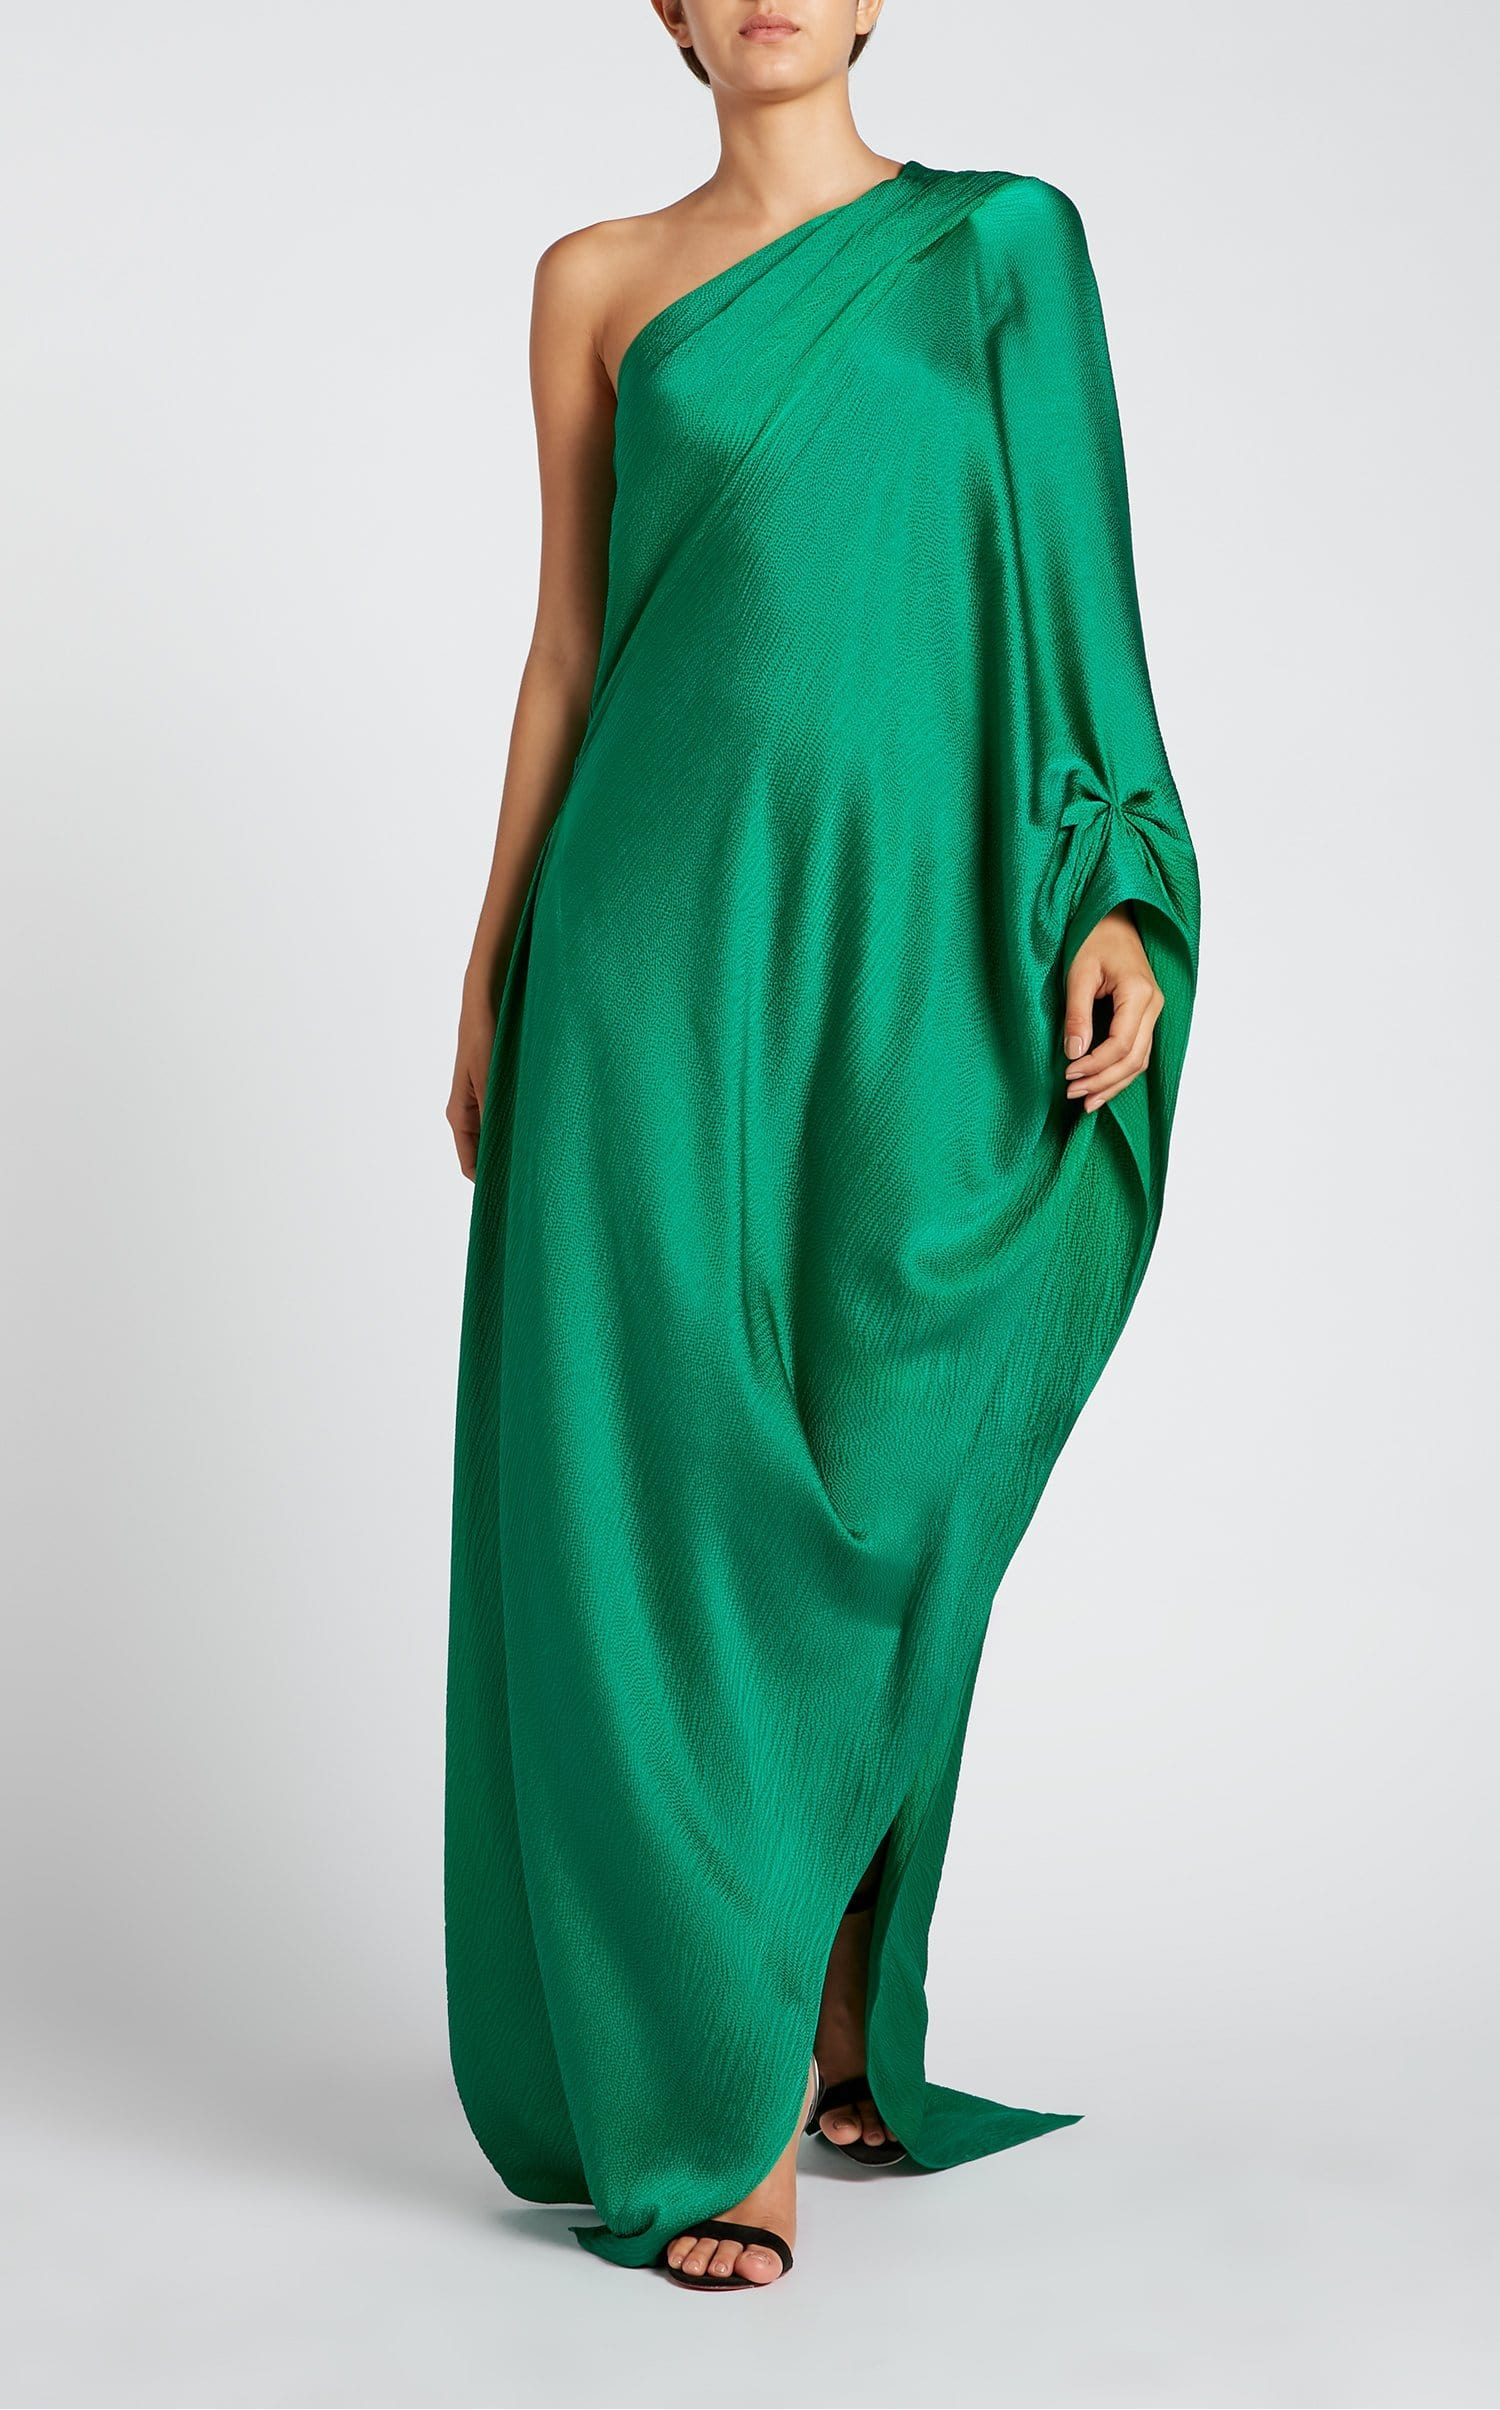 Ritts Gown In Emerald from Roland Mouret